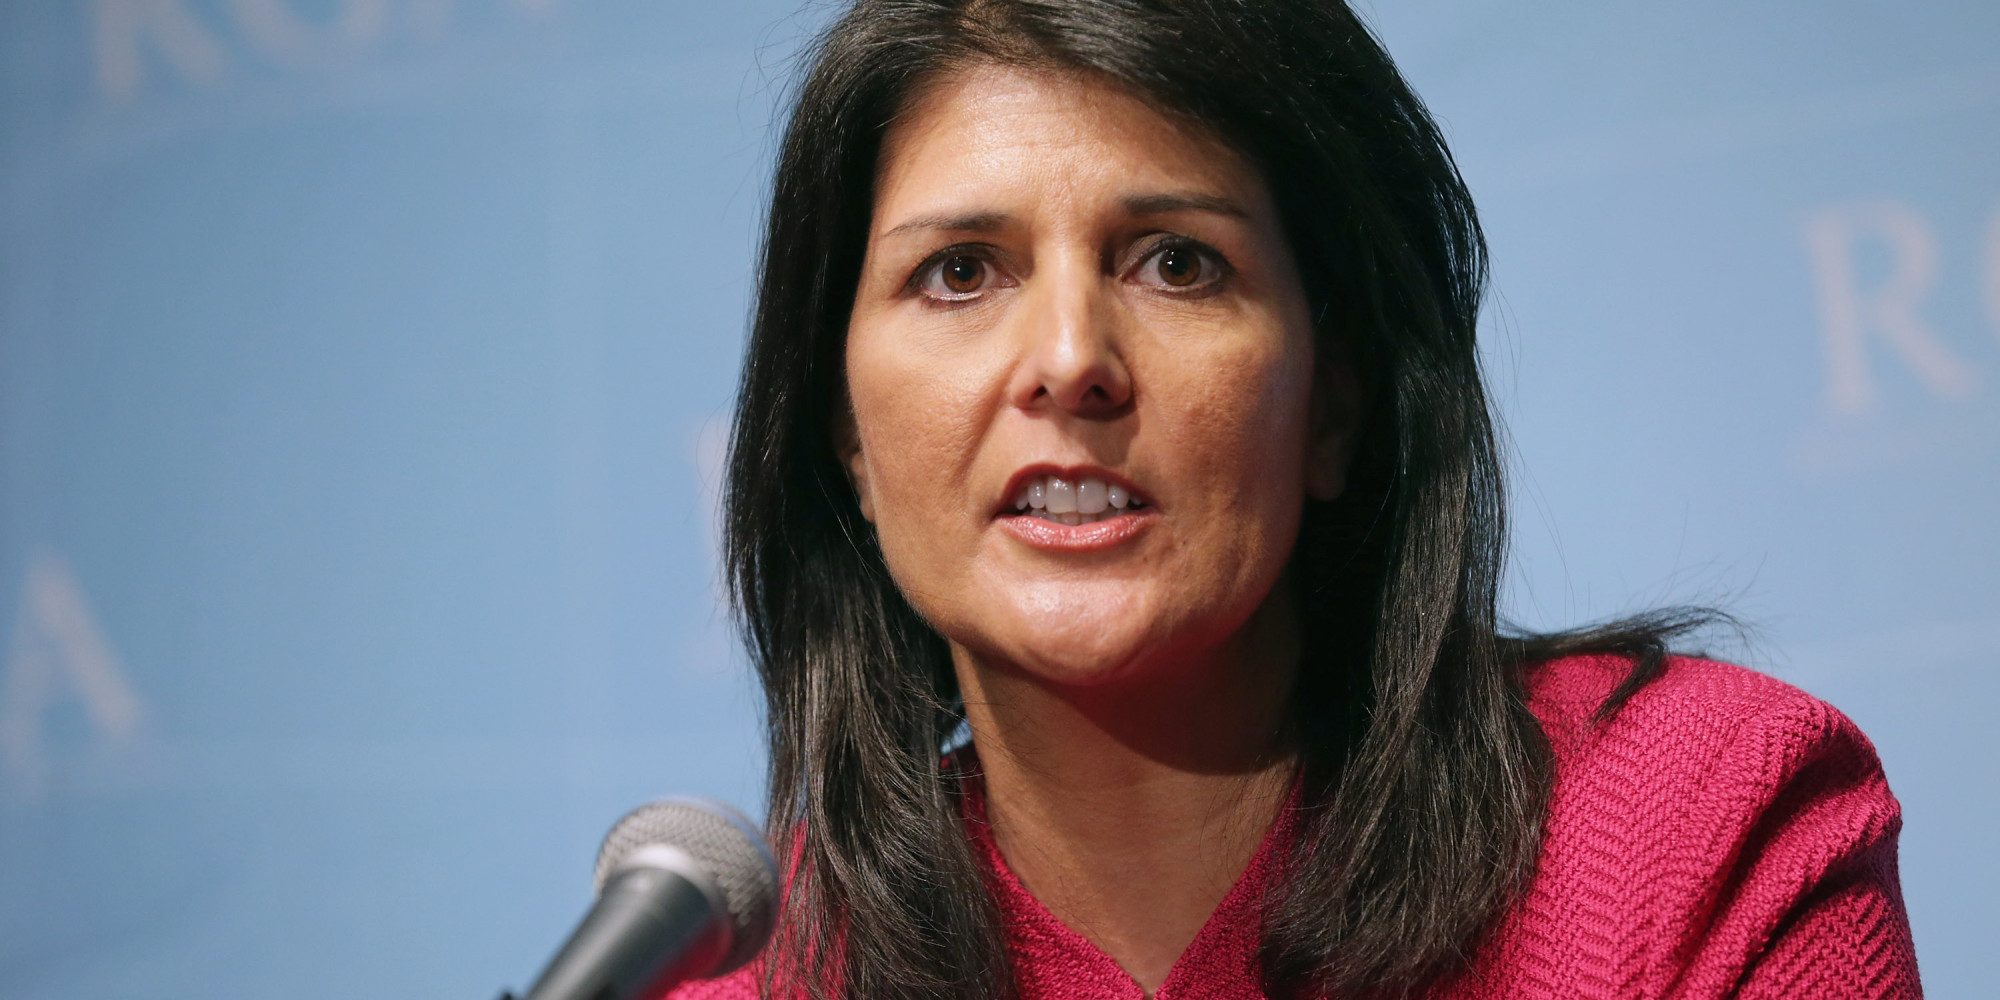 Nikki Haley Calls For Confederate Flag To Be Removed From South Carolina Capitol - o-NIKKI-HALEY-facebook